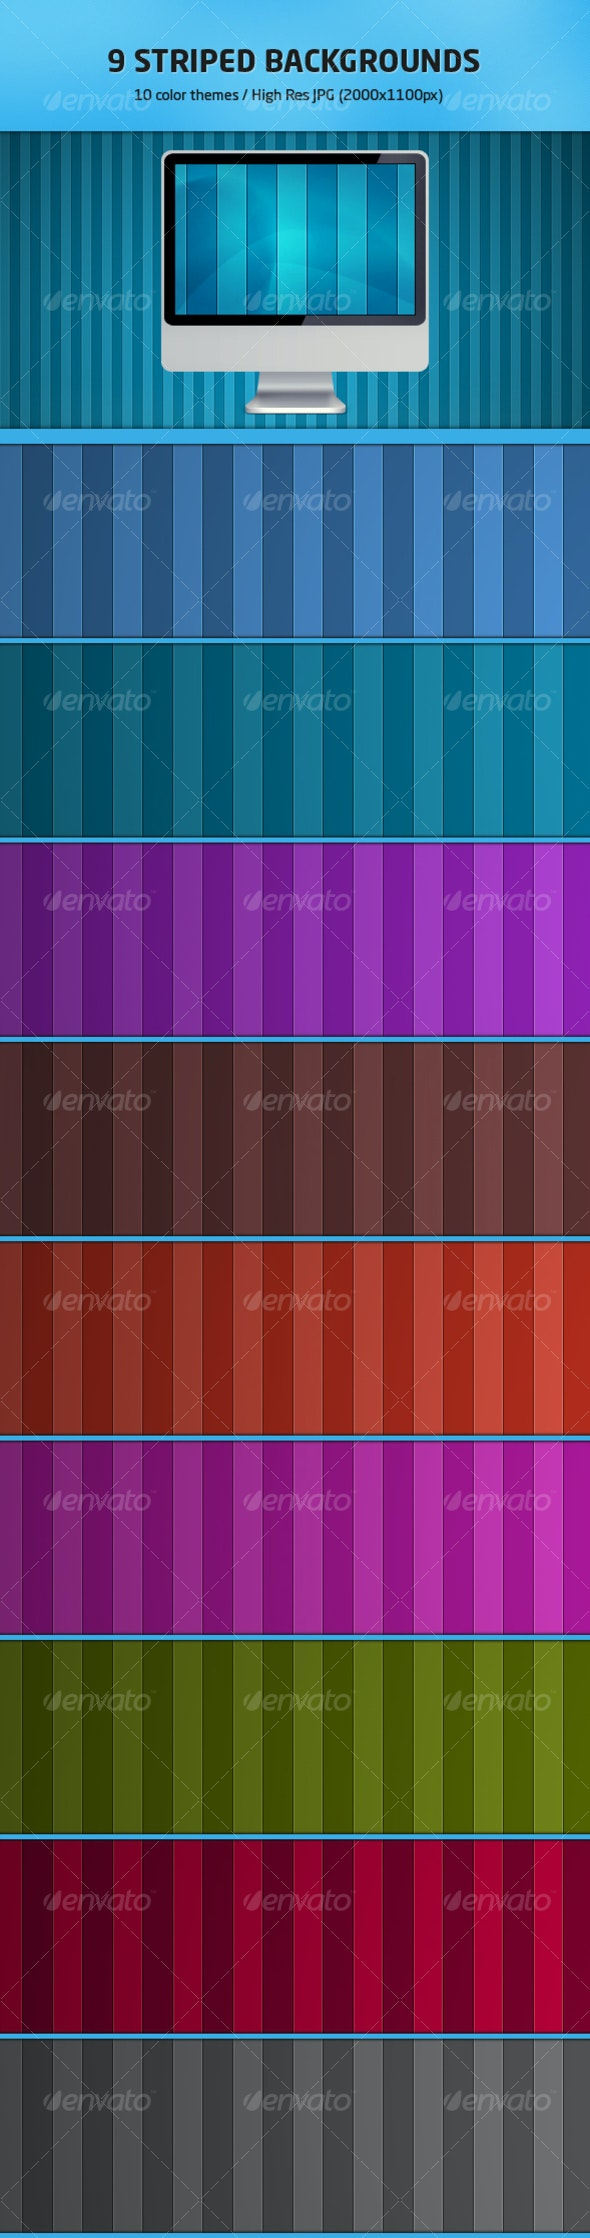 9 Striped Backgrounds - Backgrounds Graphics